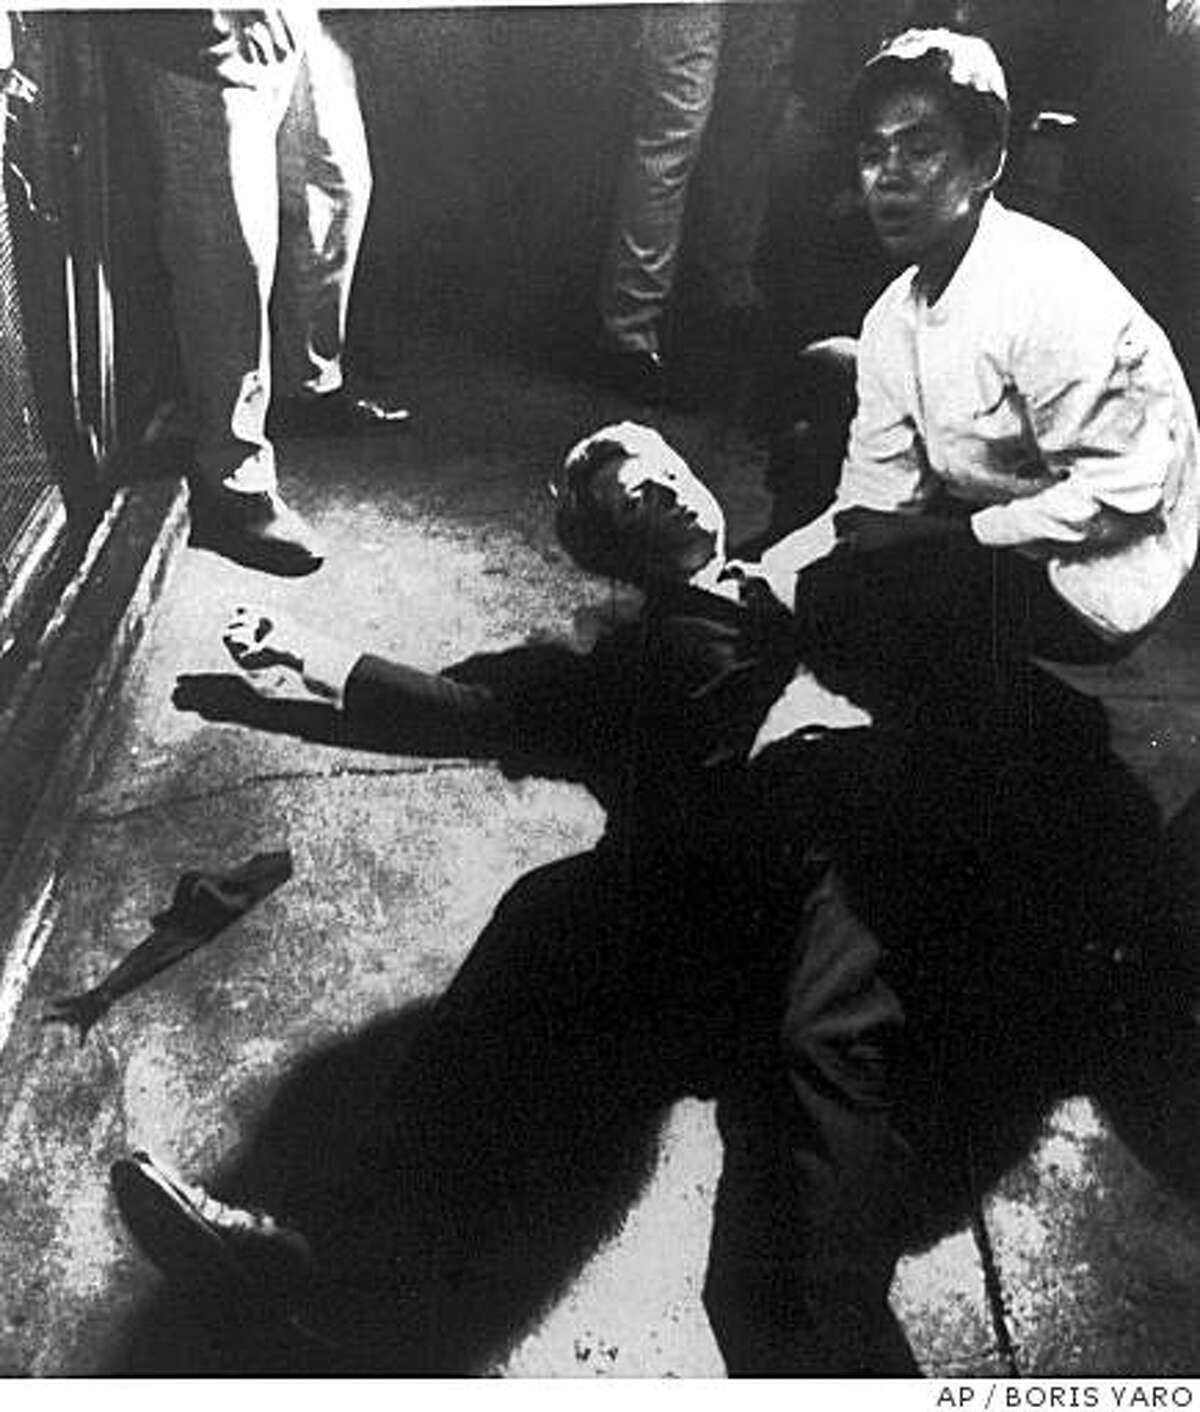 ** FILE ** Sen. Robert Kennedy awaits medical assistance as he lies on the floor of the Ambassador Hotel in this file photo taken June 5, 1968, in Los Angeles moments after he was shot. If all goes as planned, carefully crated pieces of the room where Kennedy was assassinated will be stored on a garbage-strewn lot with a view of graffiti-covered buildings and a strip club billboard. (AP Photo/Los Angeles Times, Boris Yaro, File)